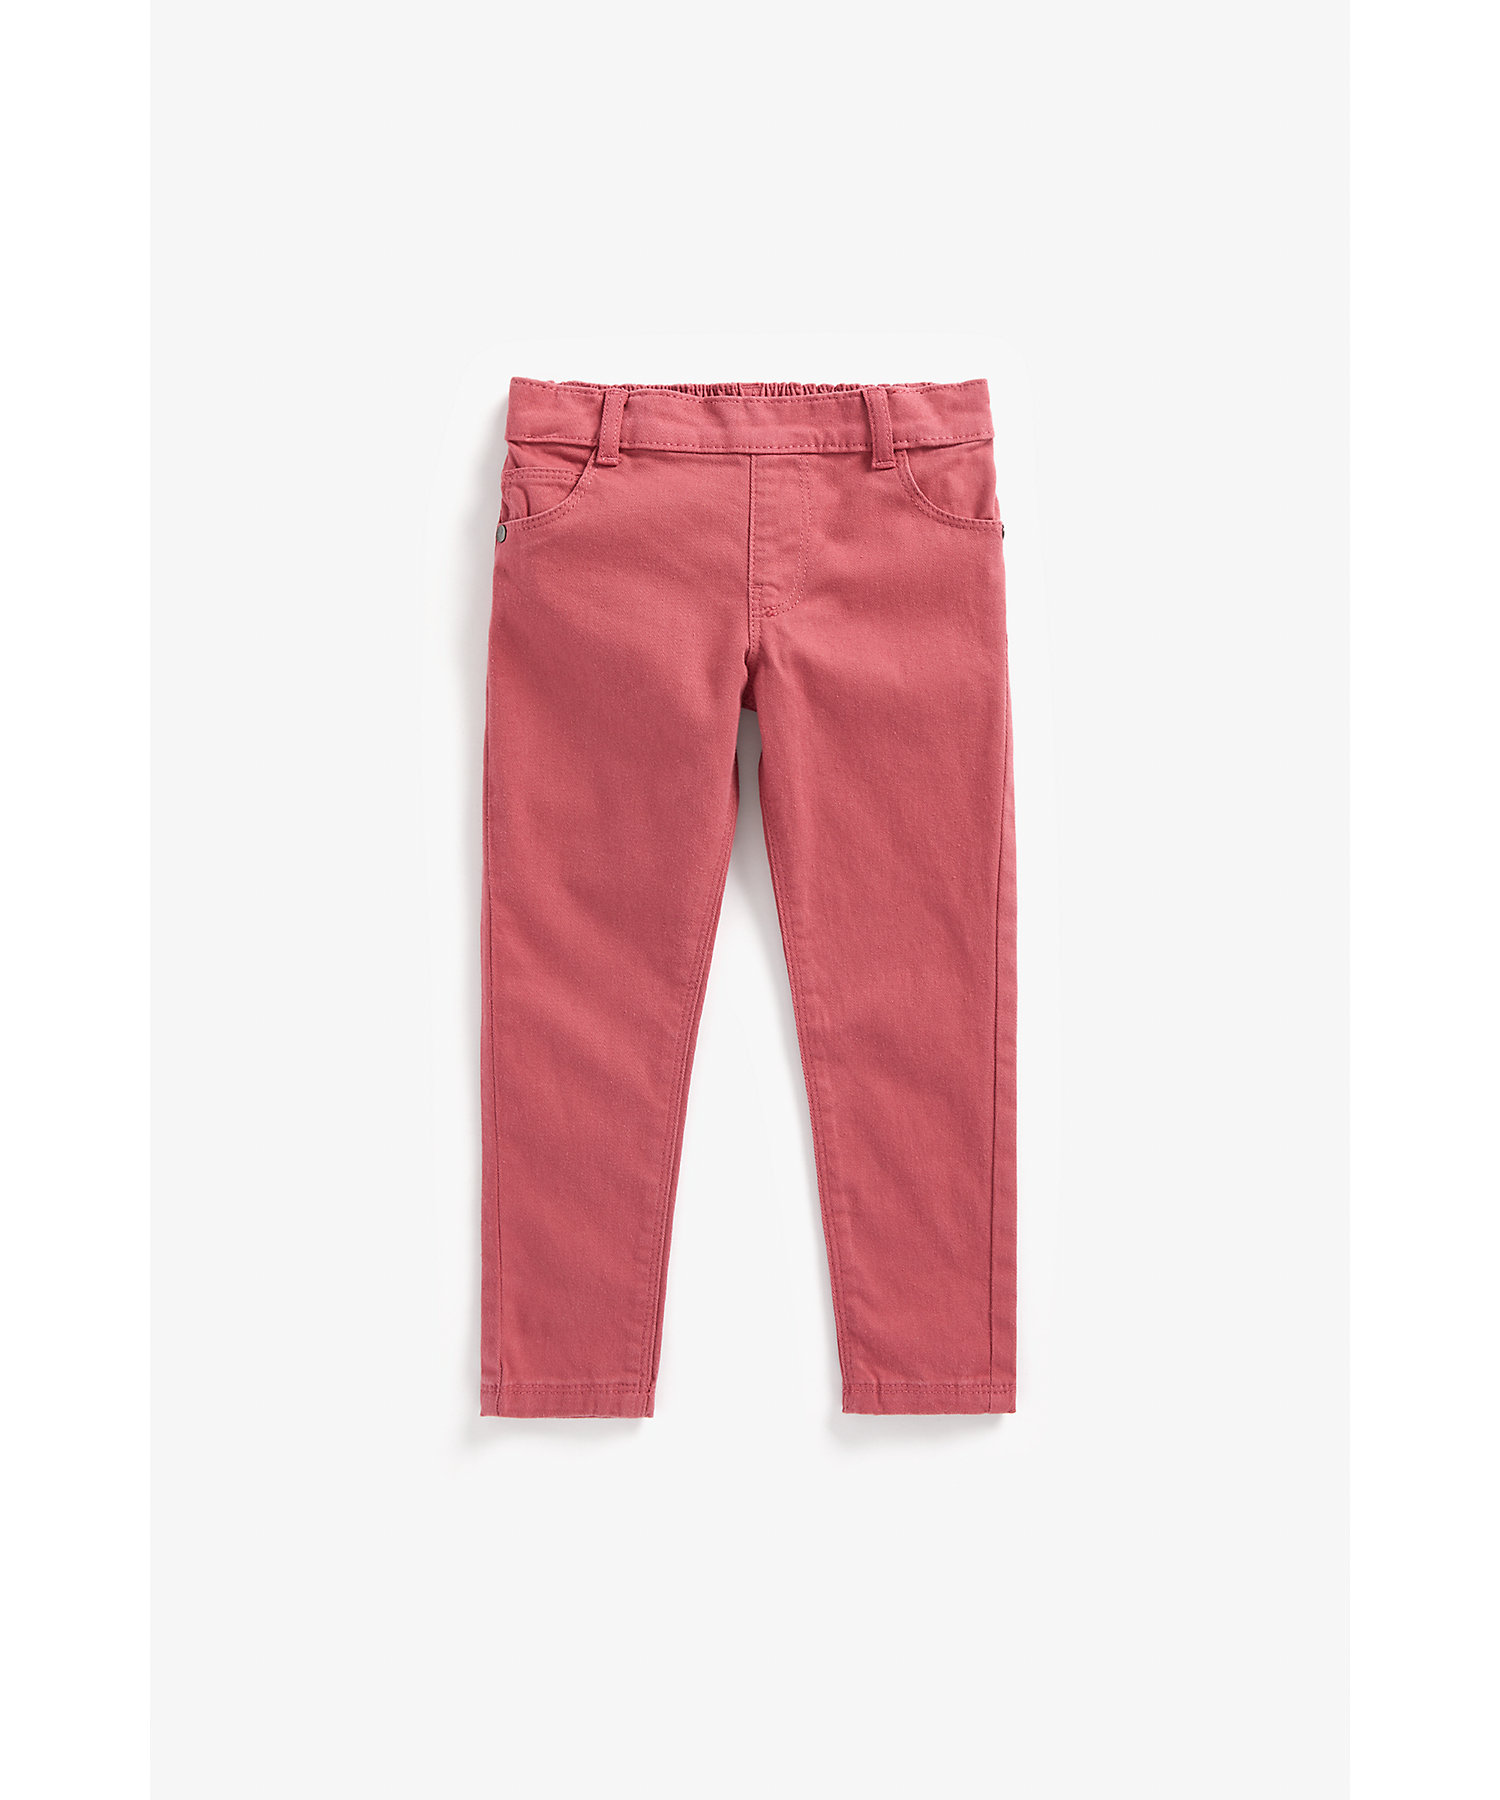 Mothercare   Girls Jeggings  - Pink